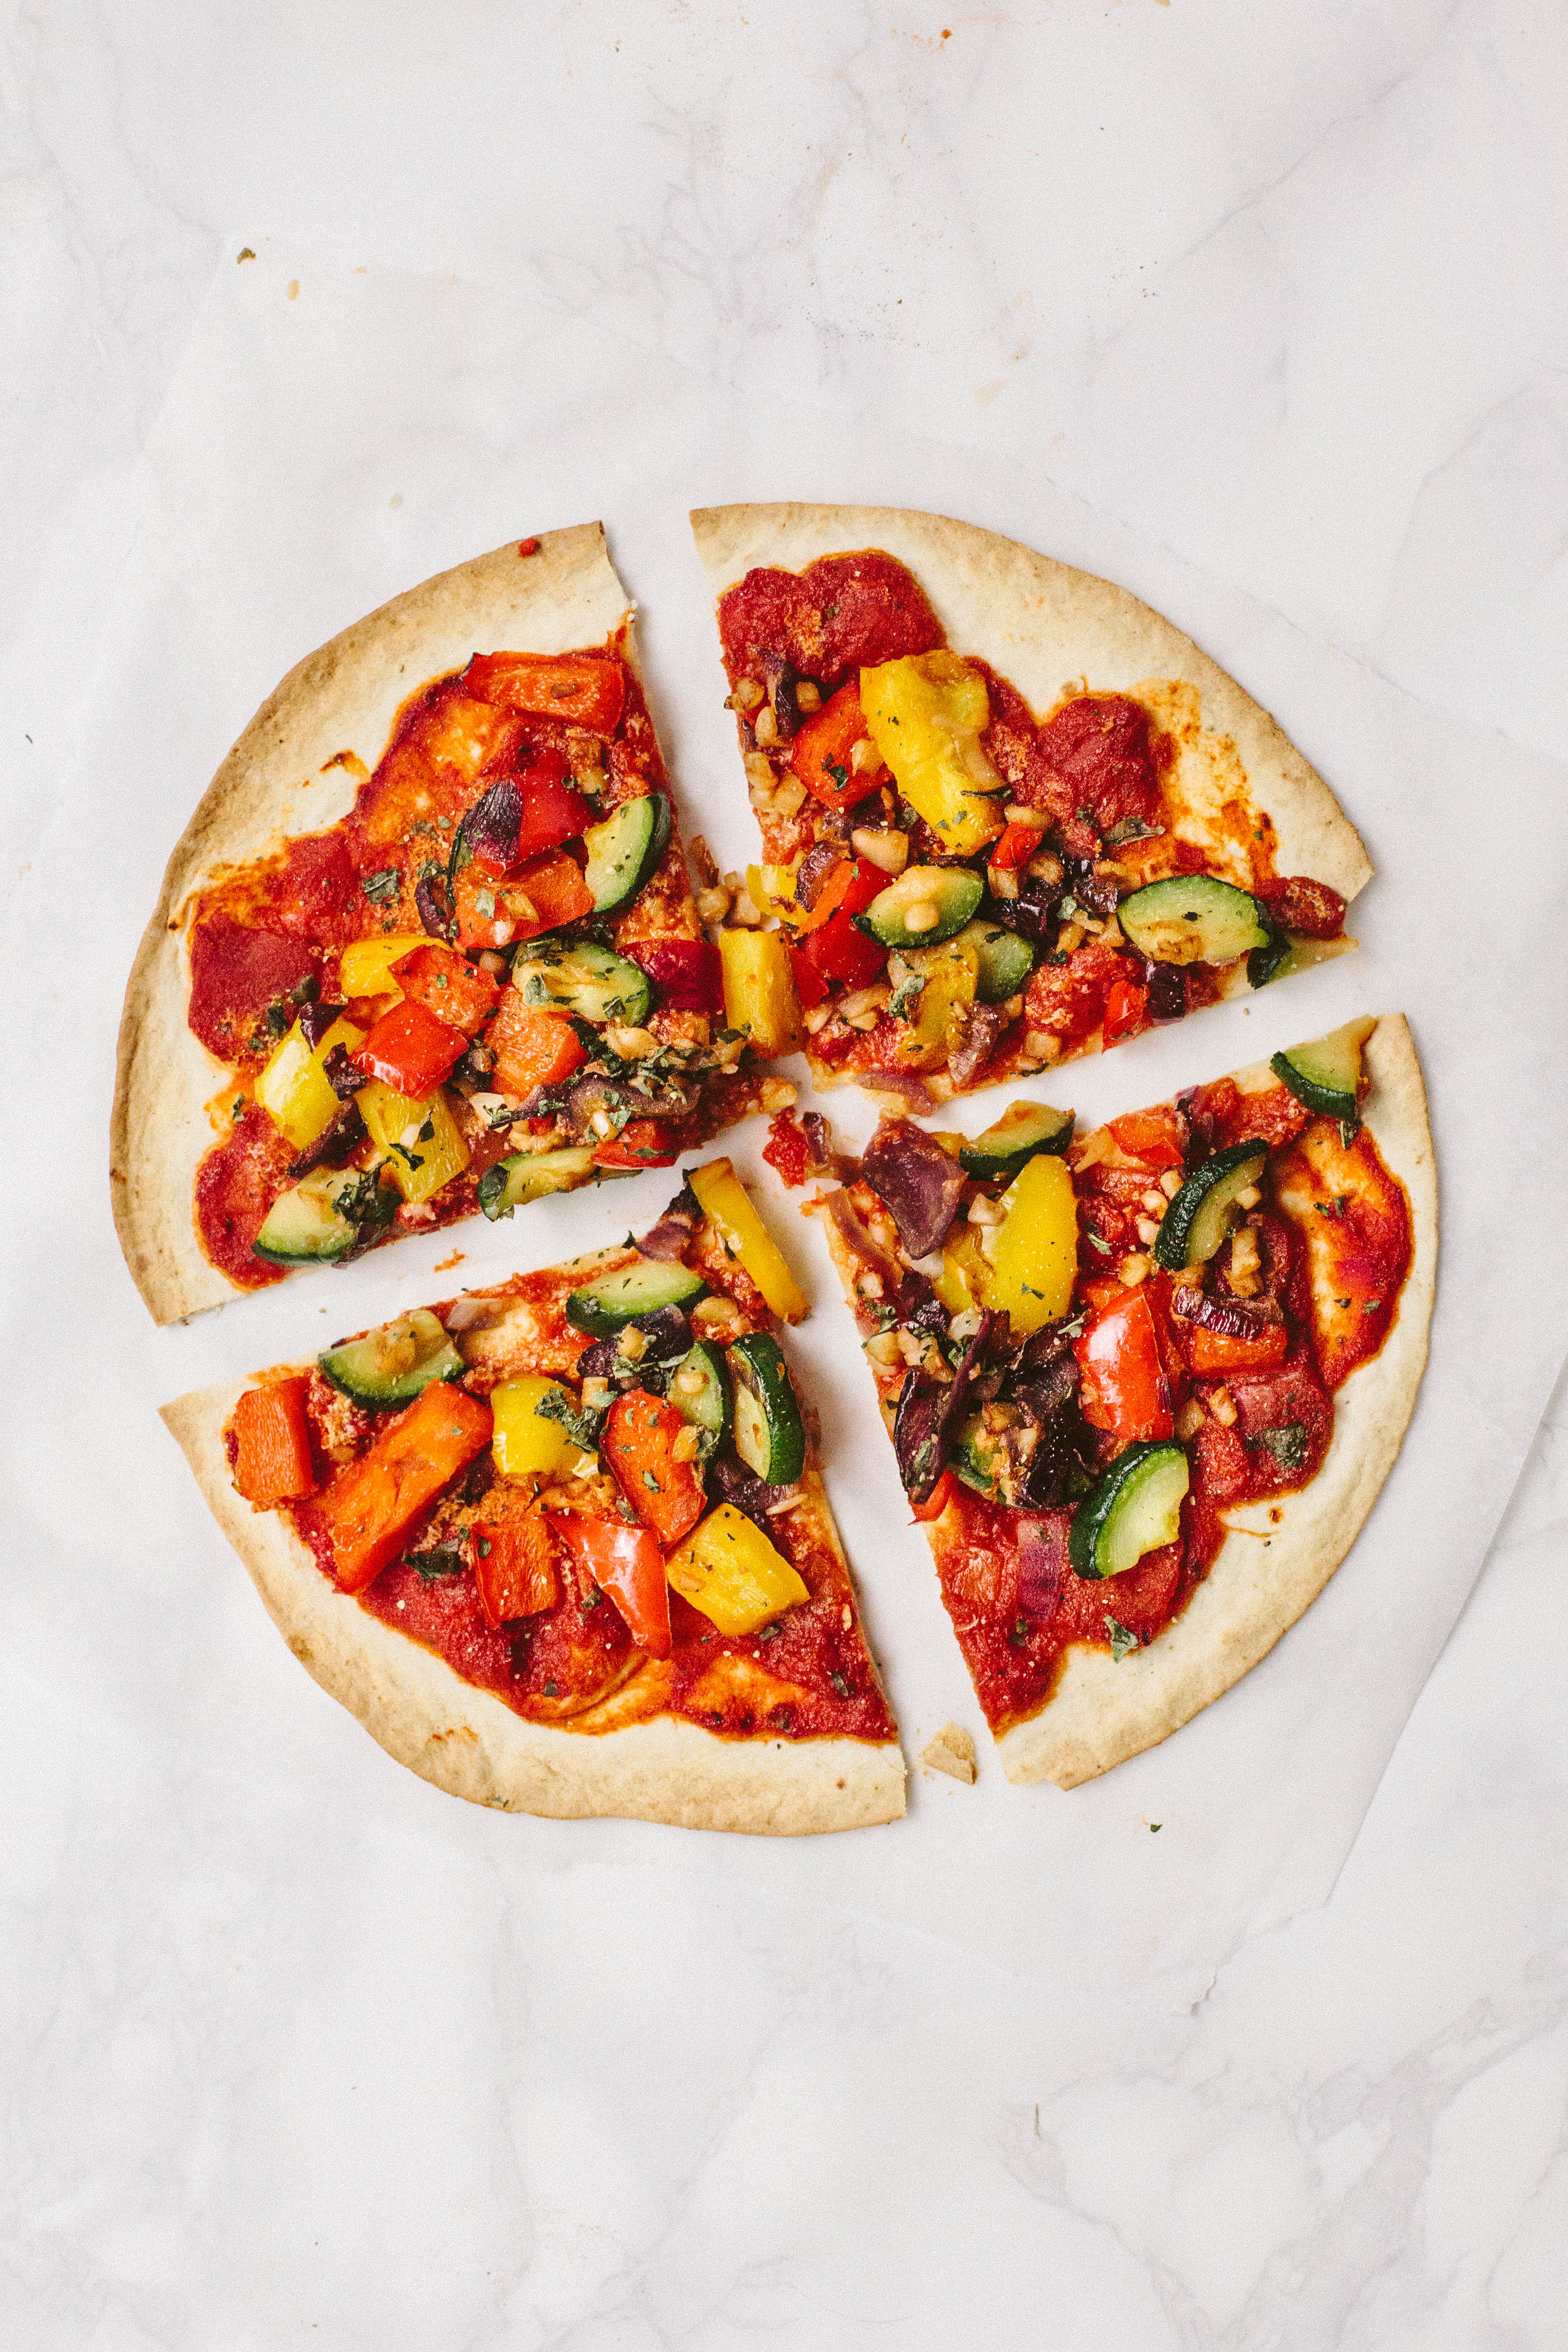 Vegan Tortilla Vegetable Pizza Wallflower Kitchen